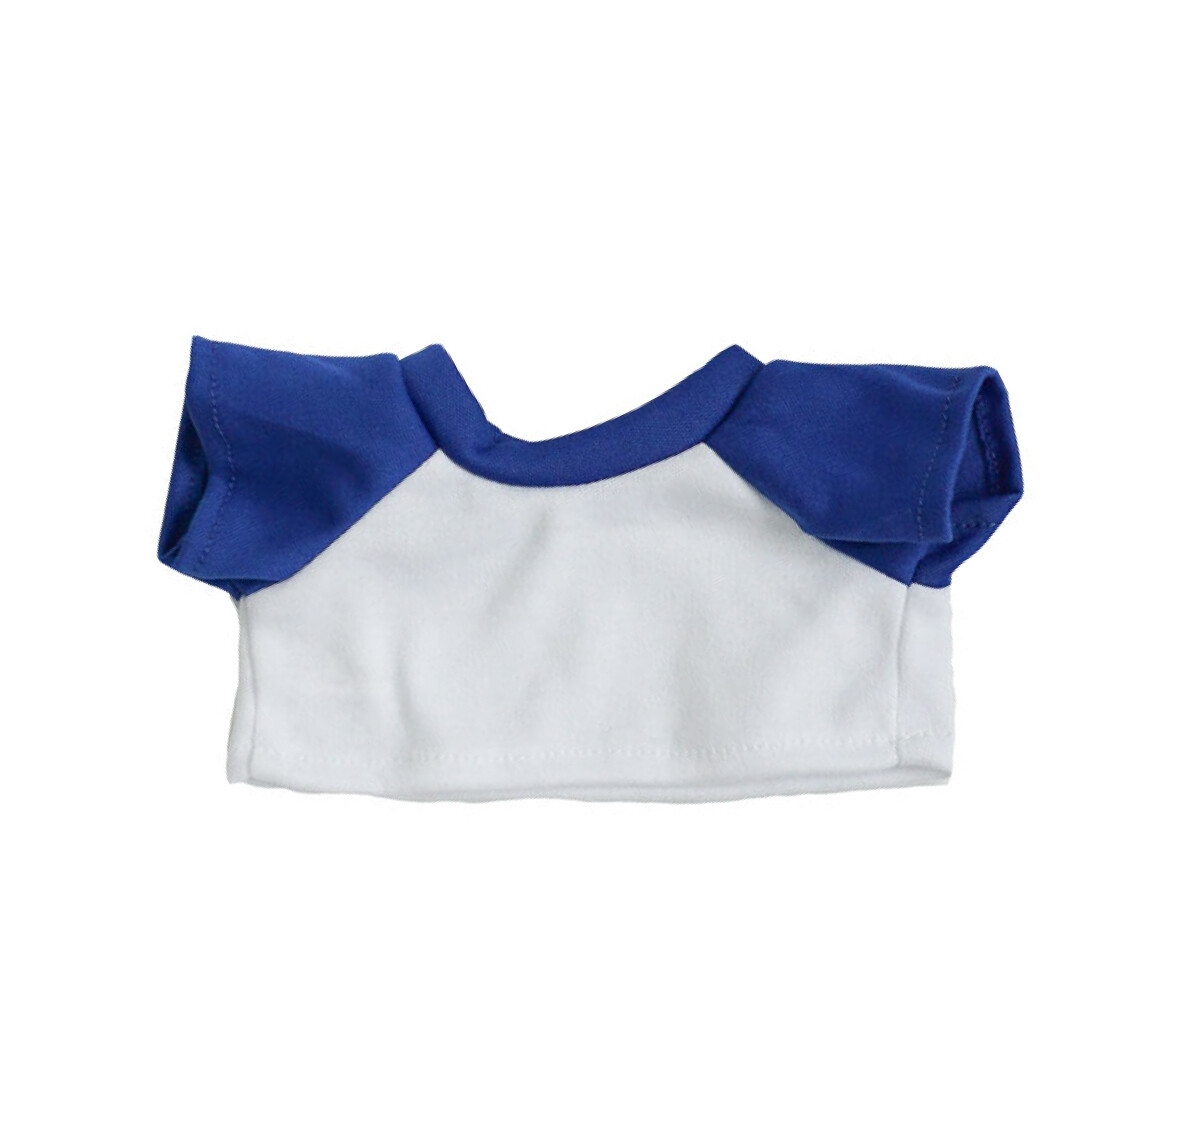 White with Blue Sleeves Basic T-Shirt - 16 inches